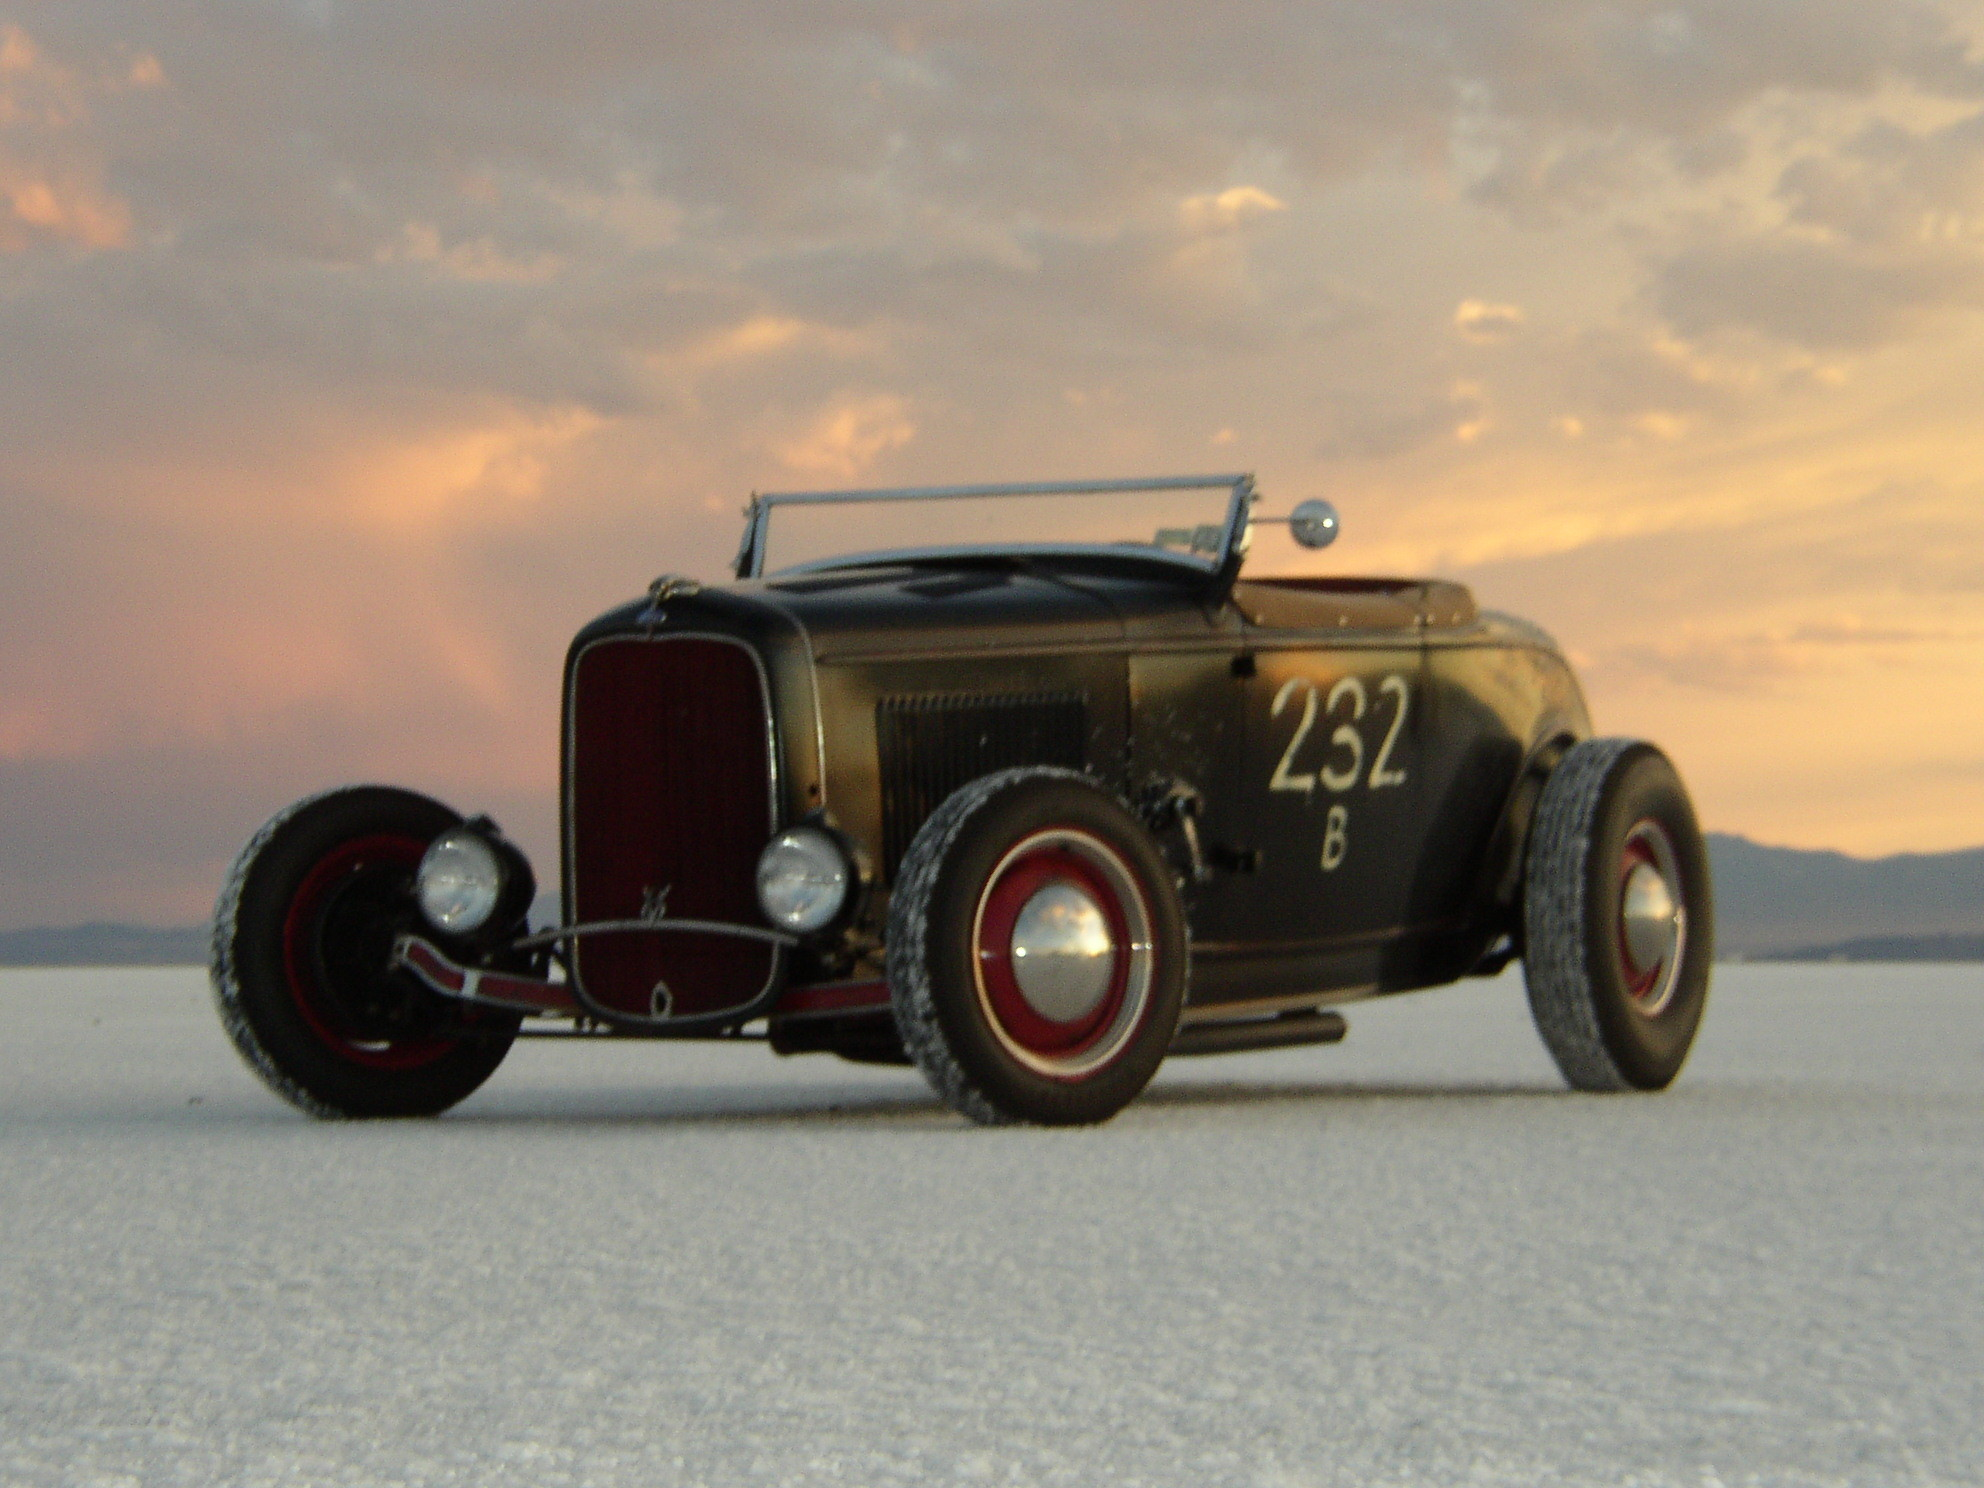 1984x1488 hot rod on salt flats